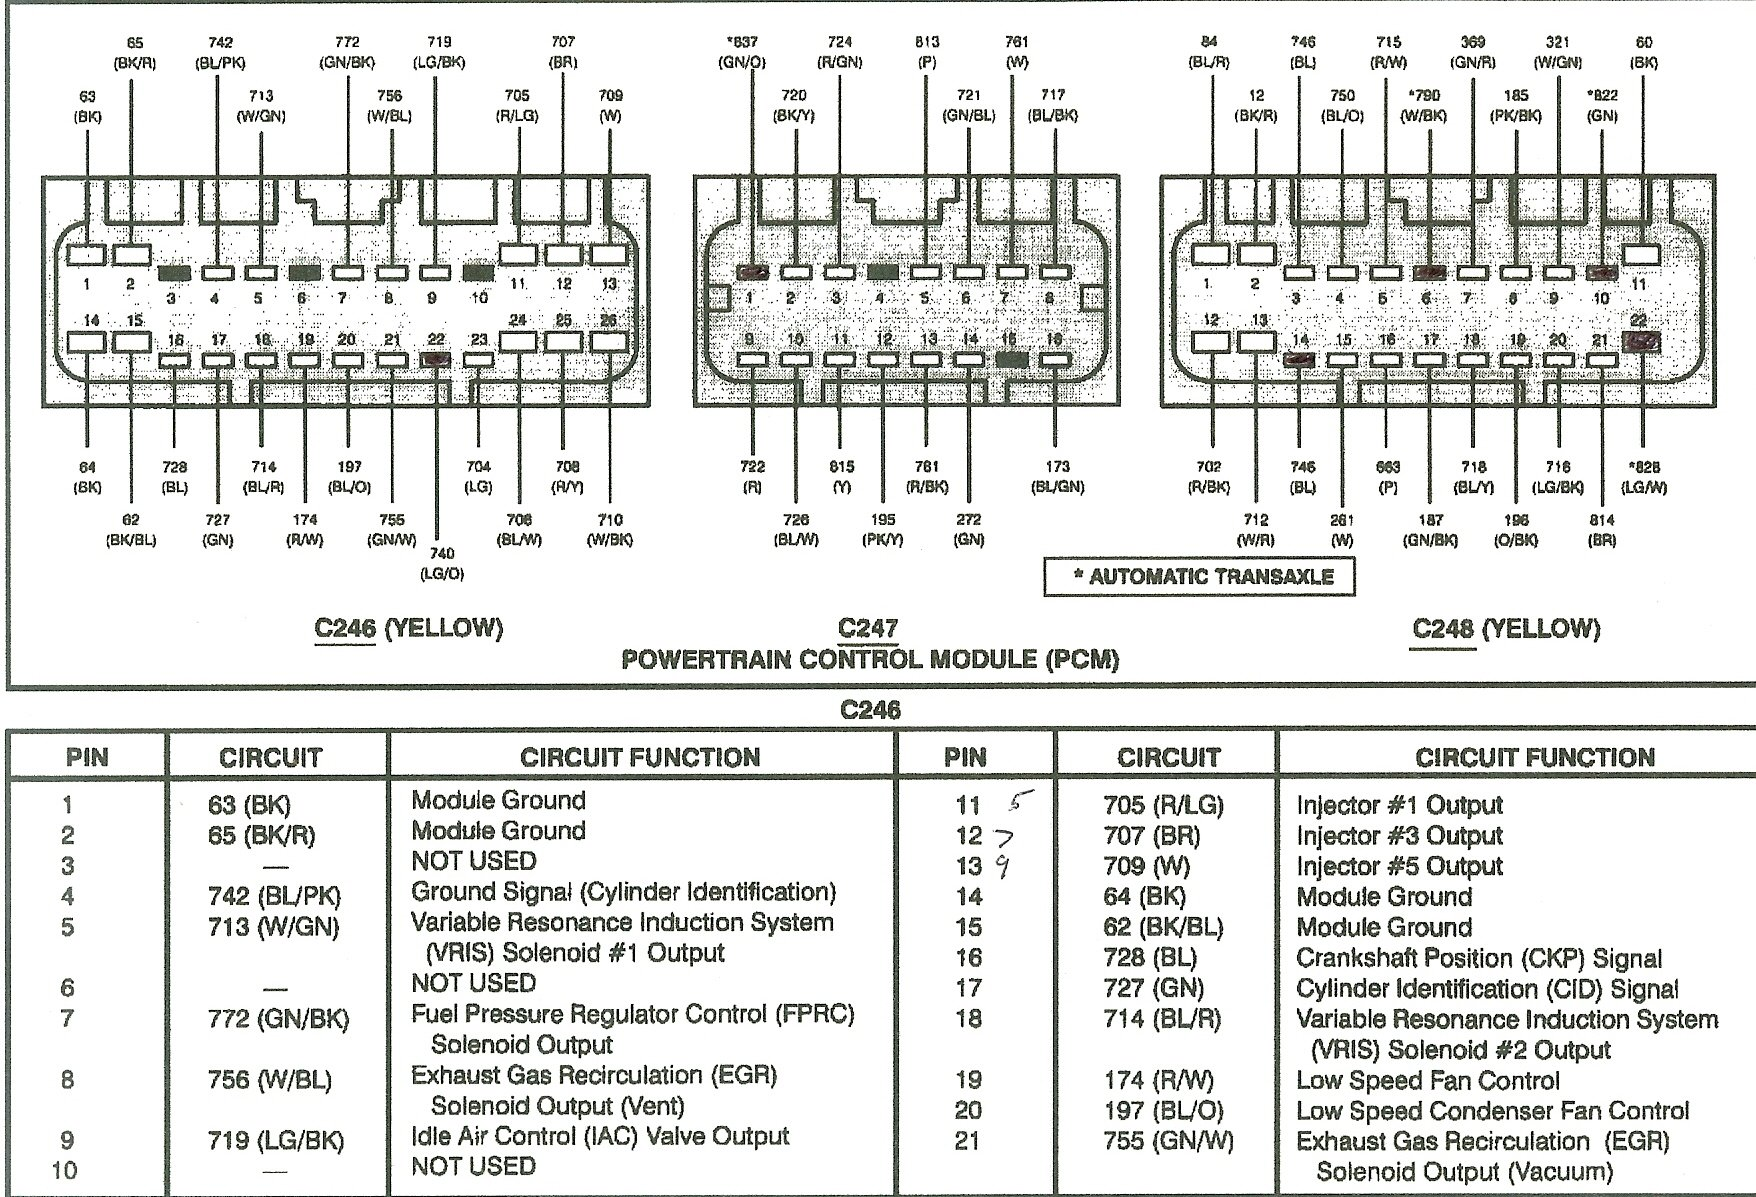 Wiring Diagram Pcm 252a Ford 6.0